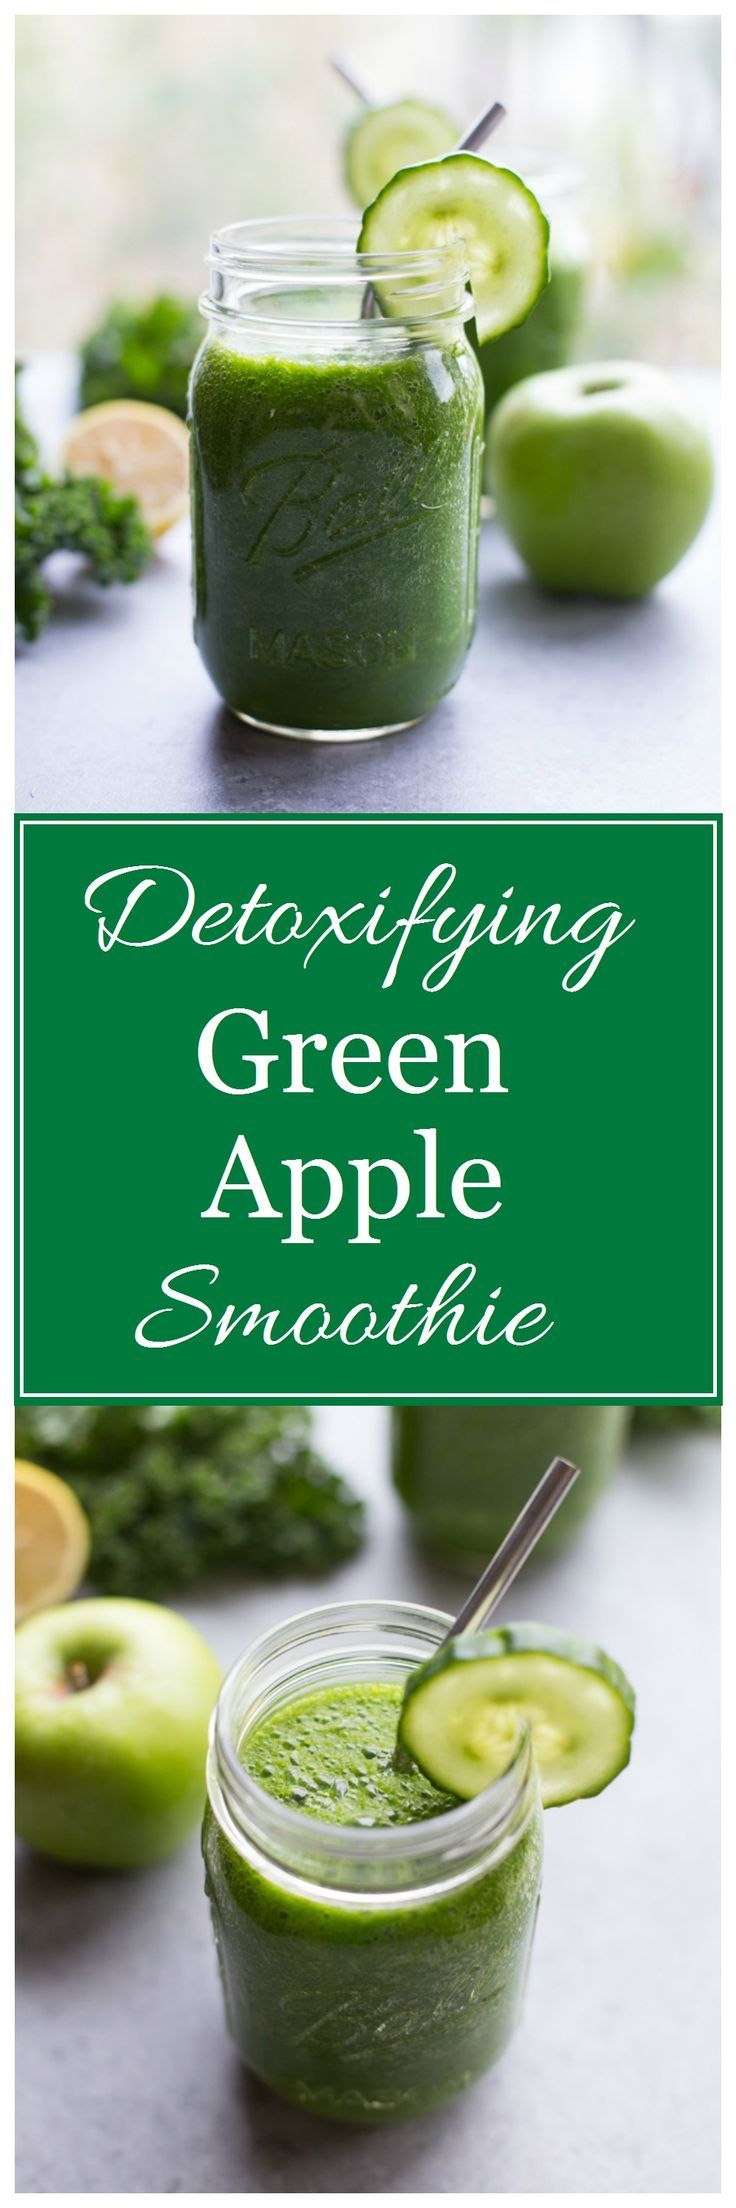 Detoxifying Green Apple Smoothie- packed full of healthy nutrients and cleansing fiber to make you glow from the inside out! #detox